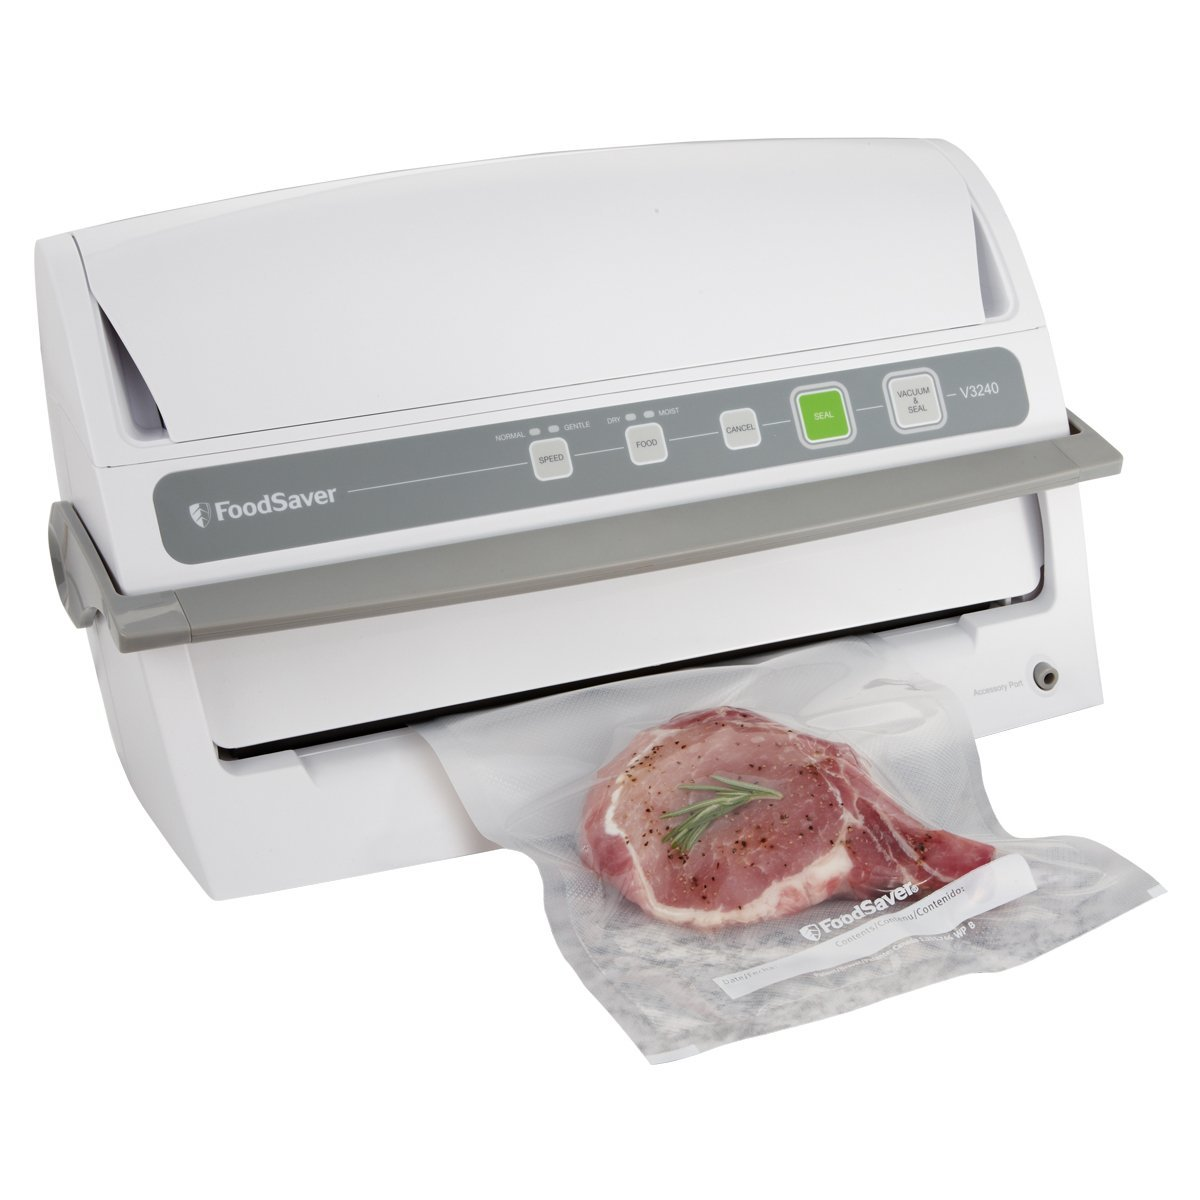 Food Saver Vacuum Sealing System